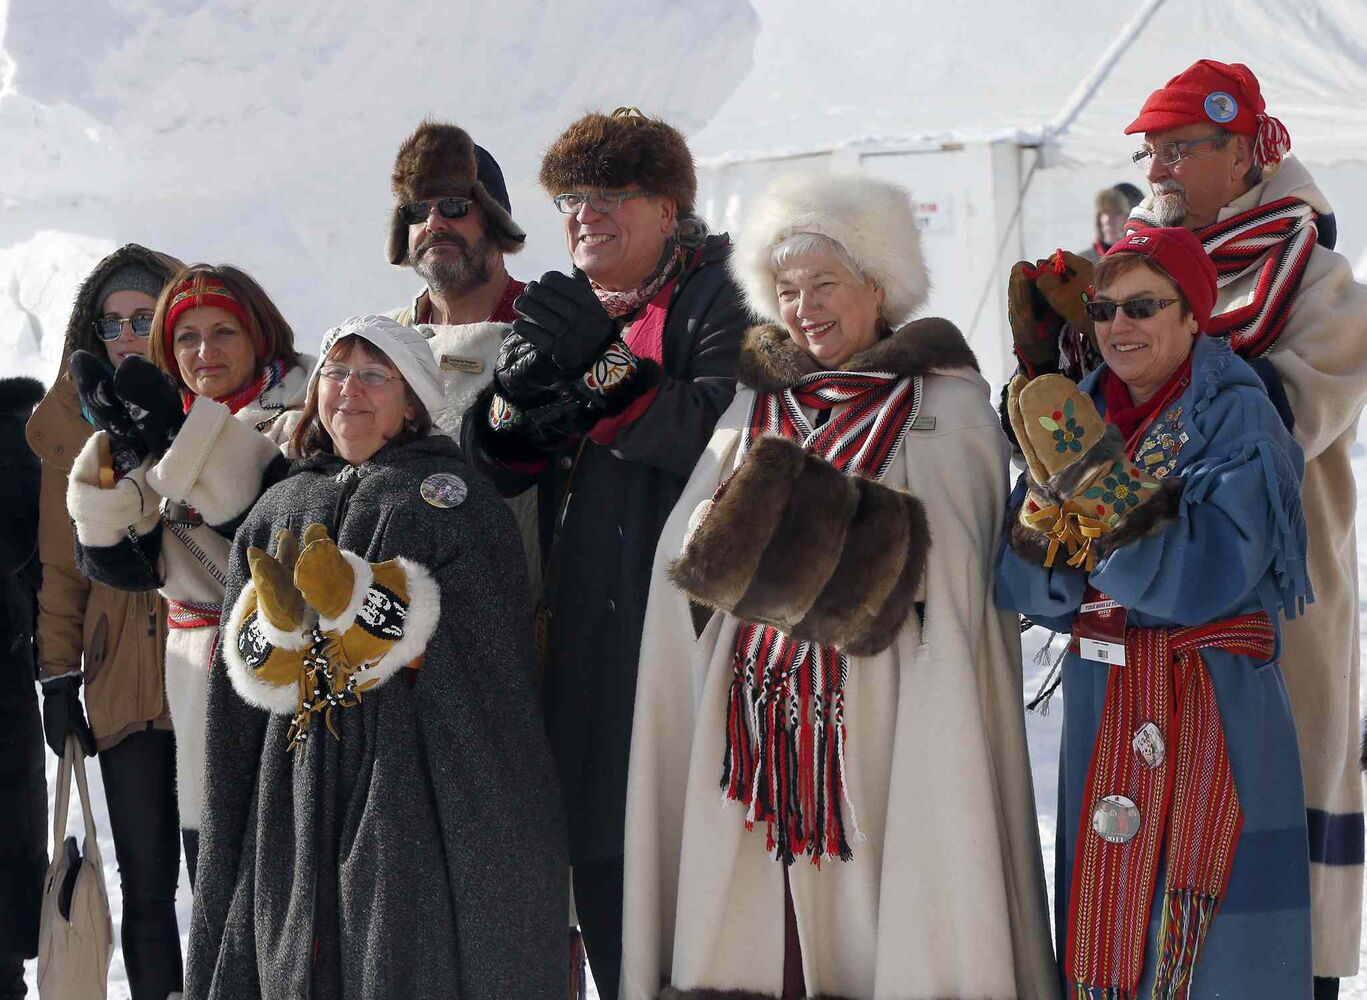 Enthusiastic festival ambassadors attend the kick-off ceremony for the 45th Festival du Voyageur. The festival runs Feb. 14 to 23 and is to include a torchlight walk, international snow sculpture competition, music and entertainment and the creation of the world's largest living Metis Flag on Louis Riel Day.  (KEN GIGLIOTTI / WINNIPEG FREE PRESS)